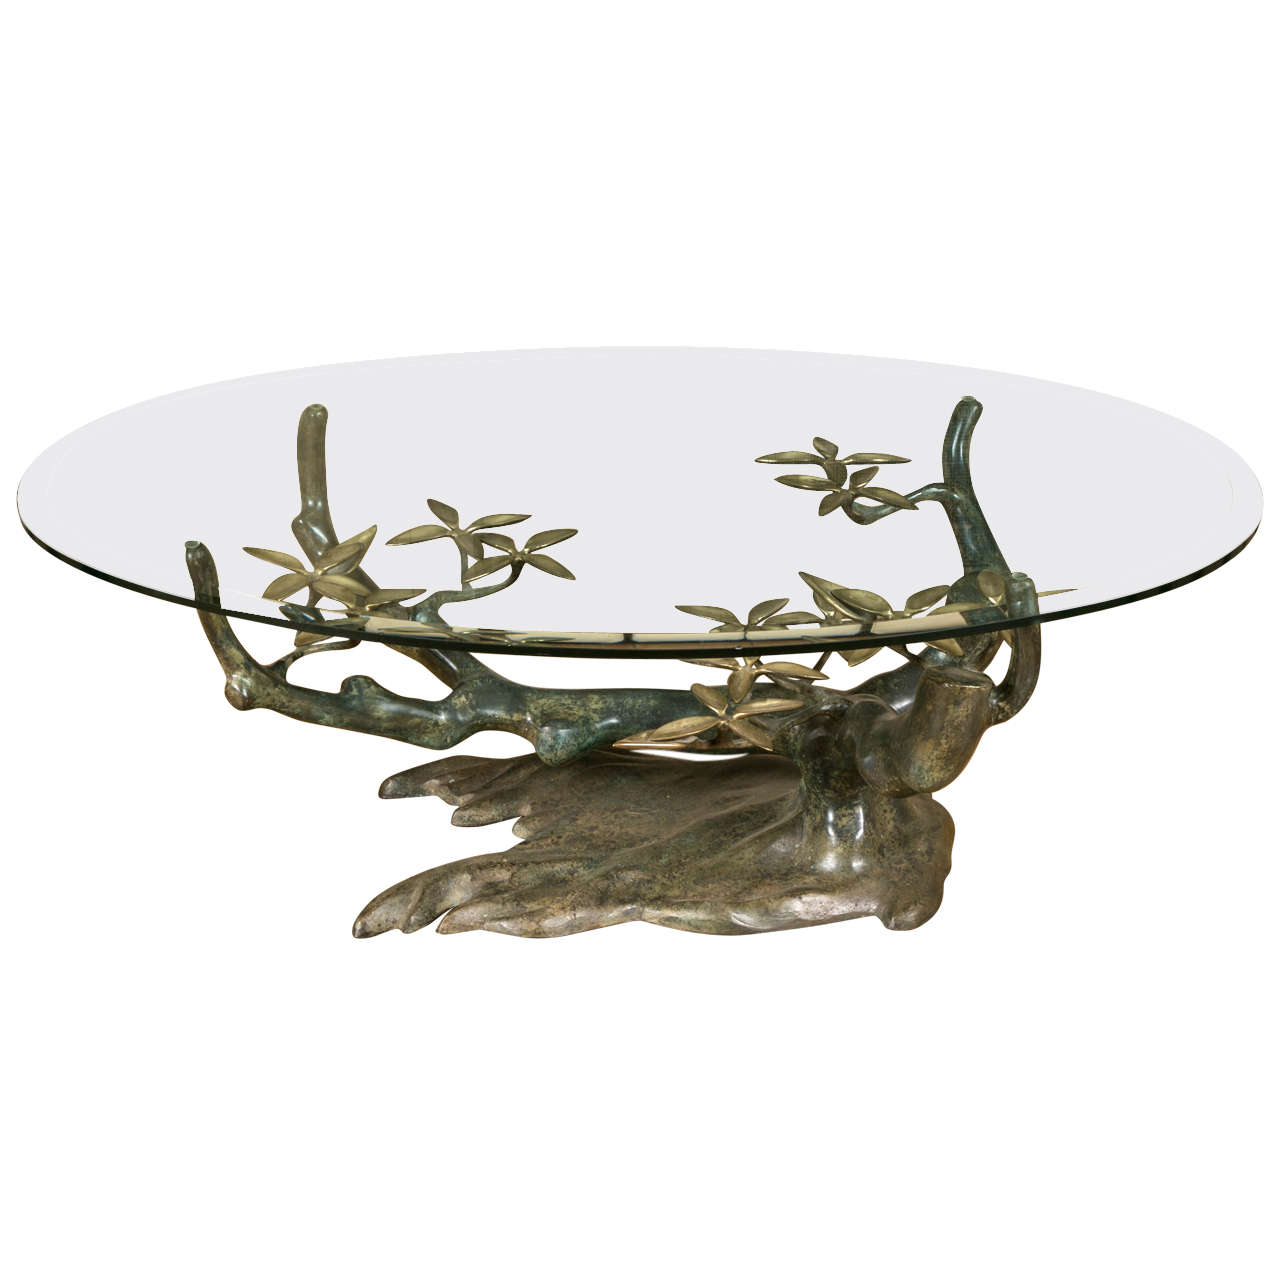 Tree Coffee Table With Green And Gold Patina Created By Willy Daro Circa 1960 At 1stdibs